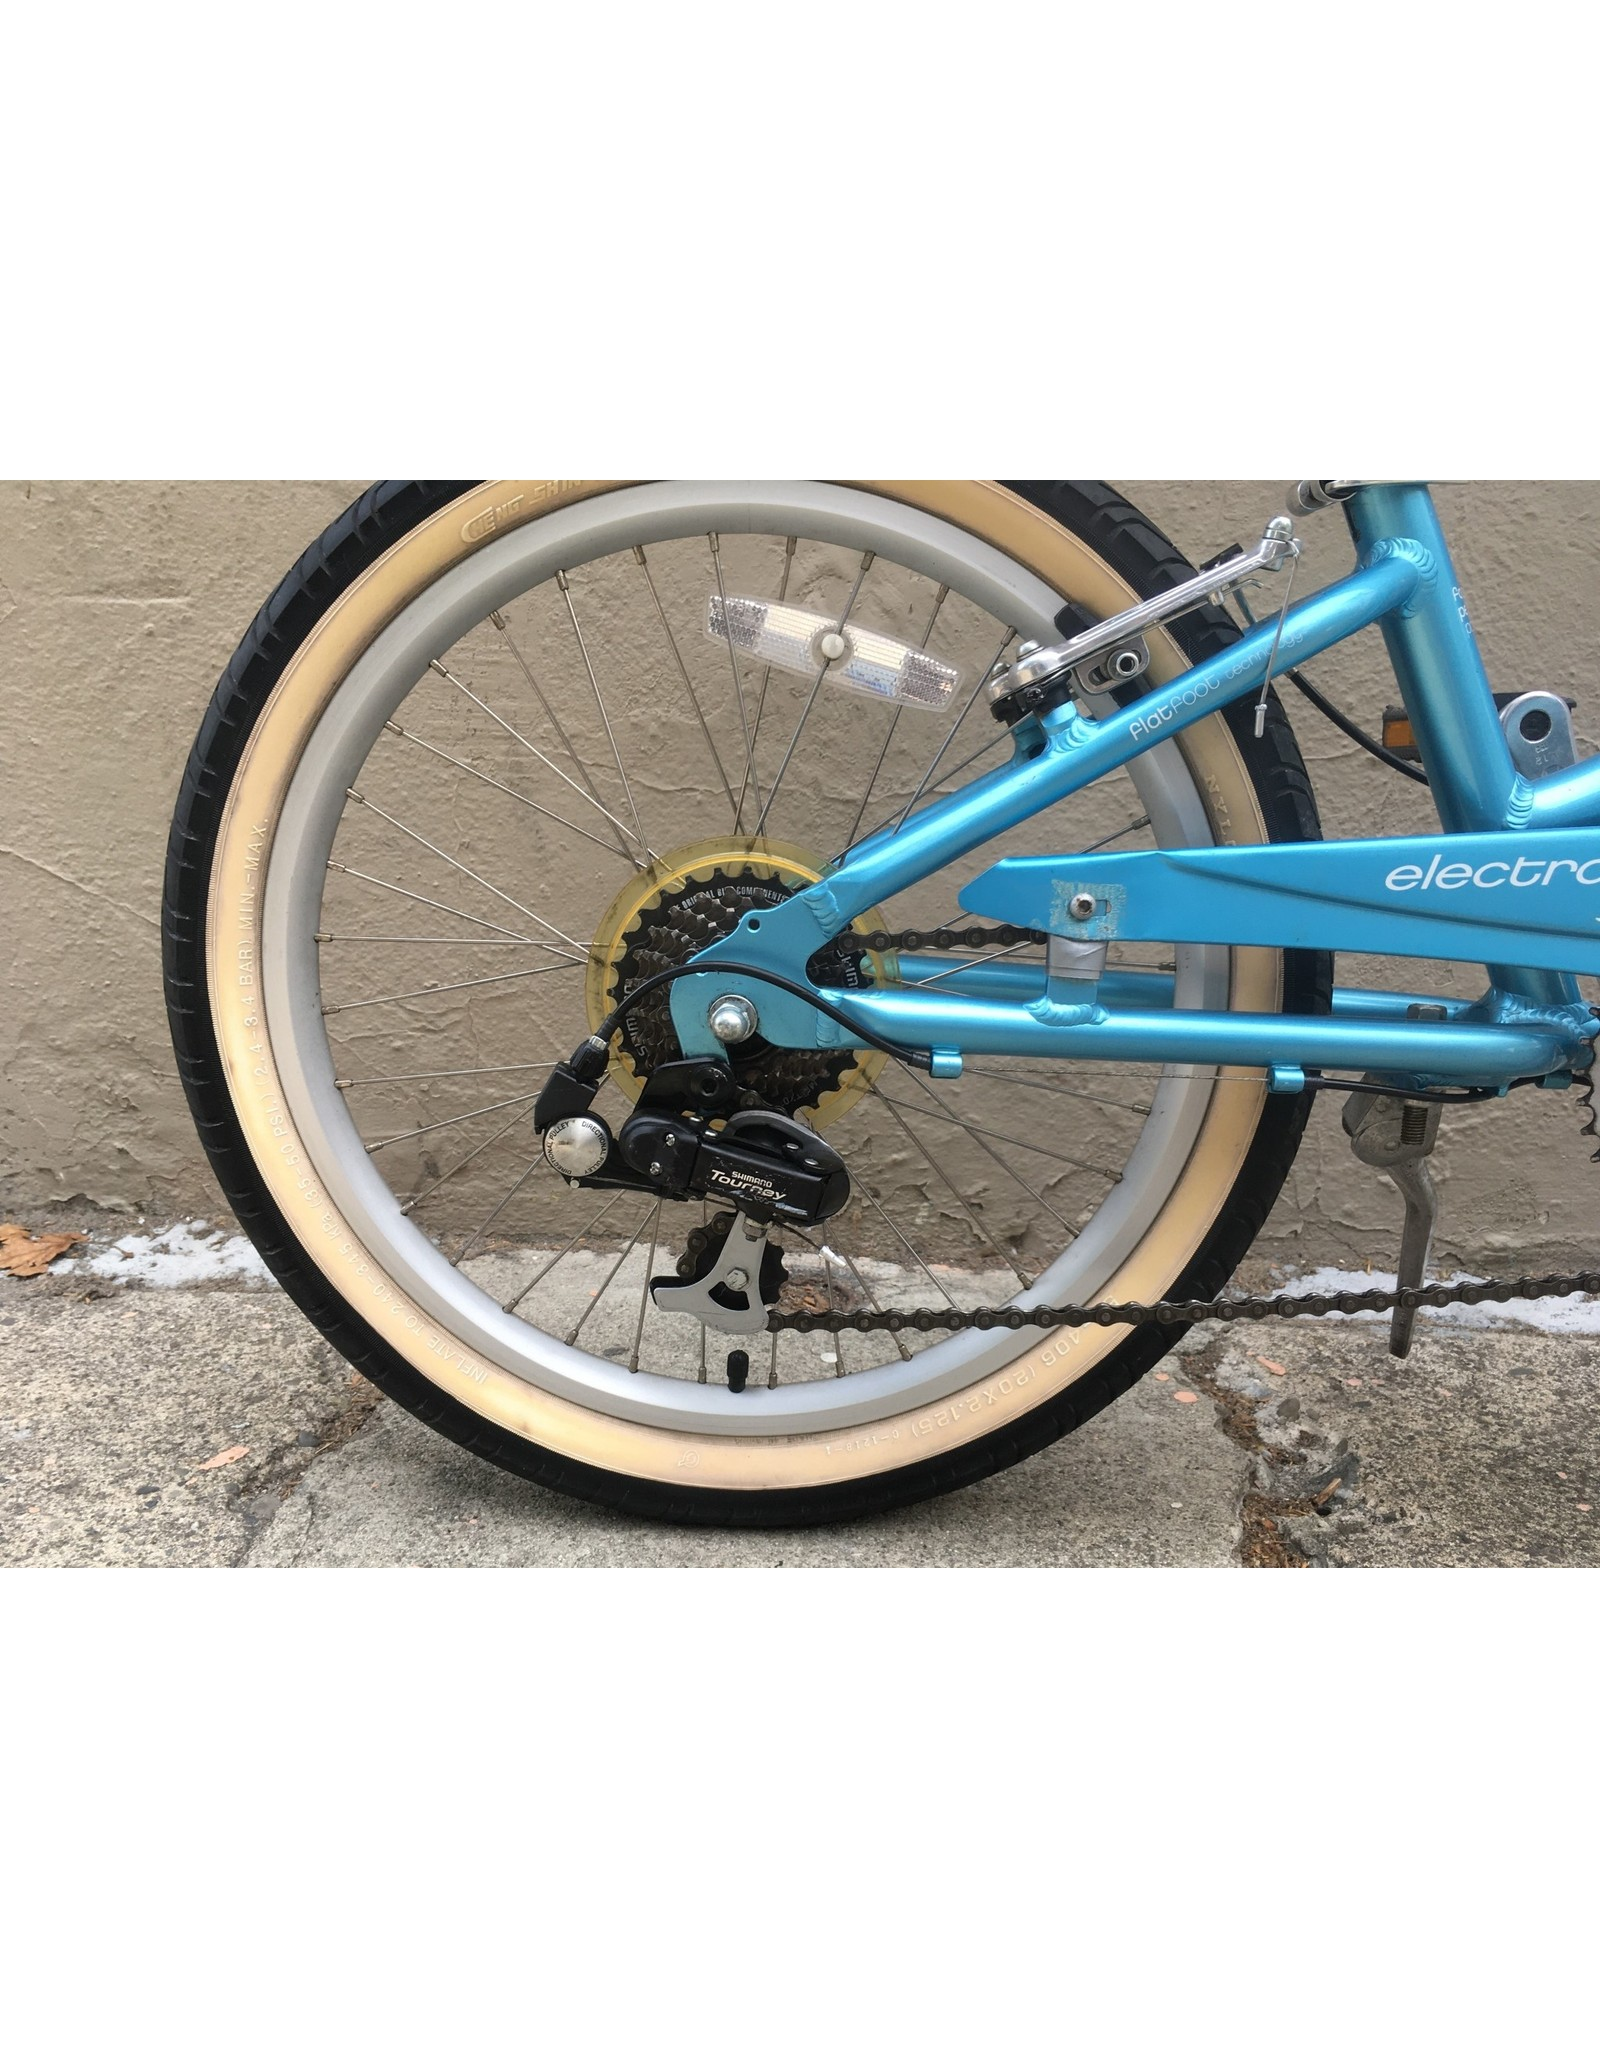 ELECTRA Electra Cruiser Townie 7D Youth Cruiser, 20 Inch Wheel, Blue